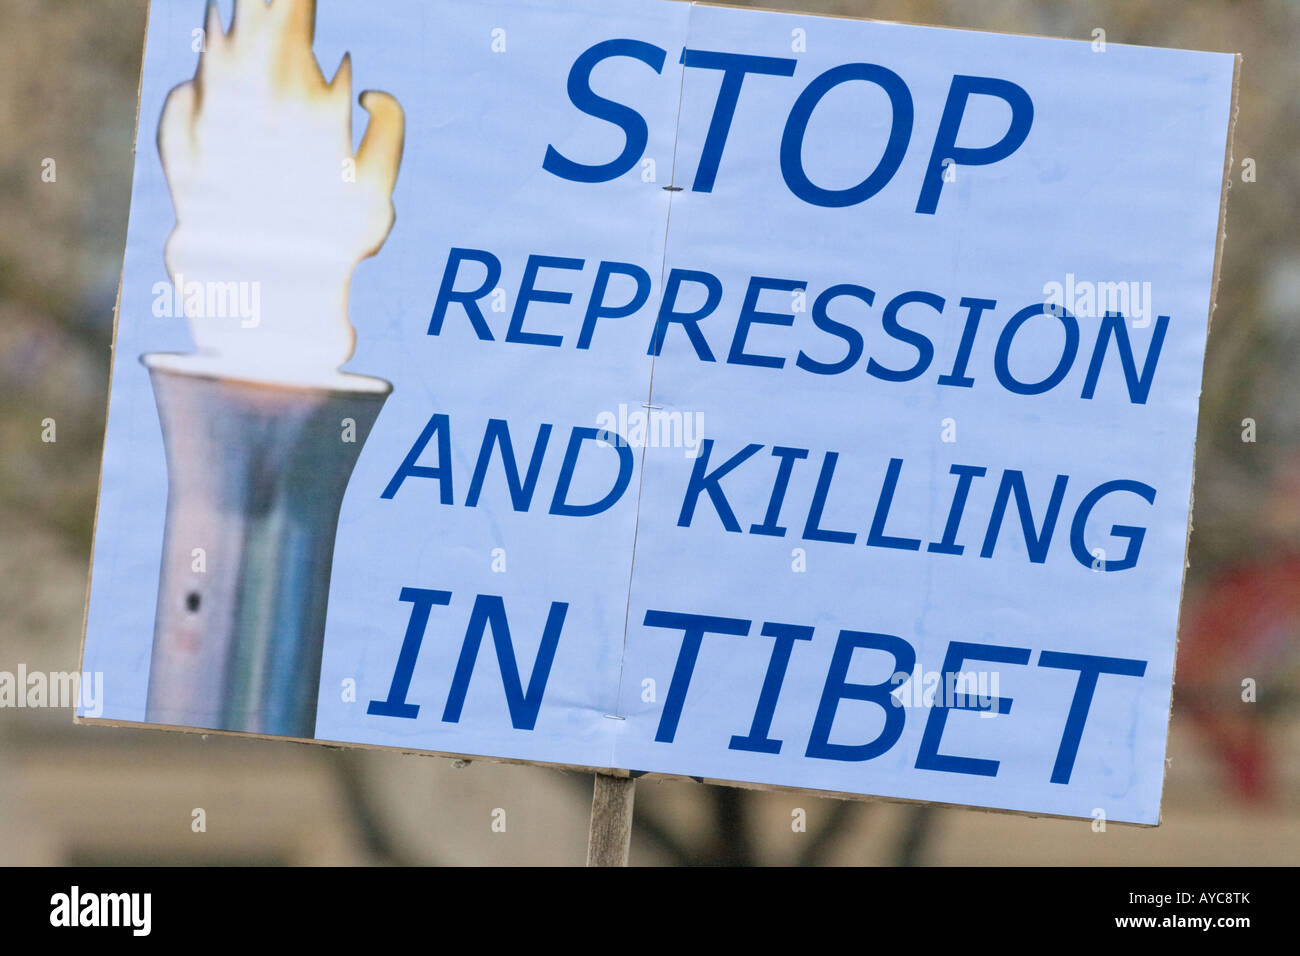 A sign reads Stop Repression and killing in Tibet - Stock Image